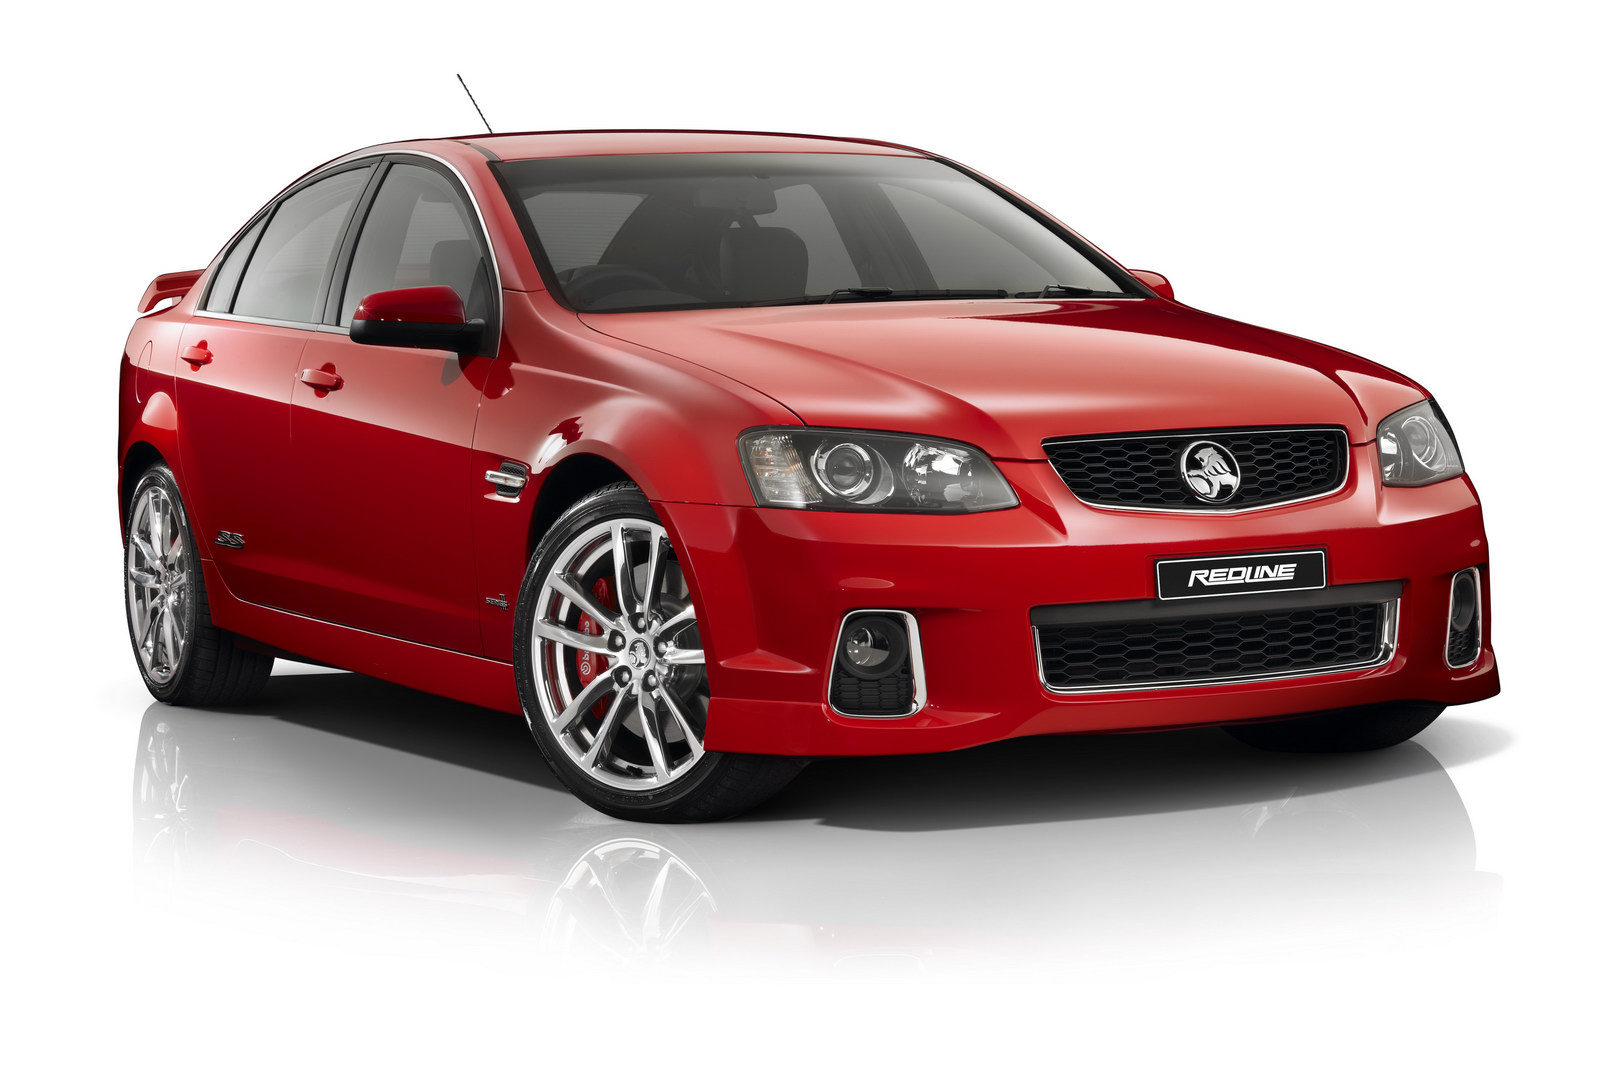 2012 Holden SSV Redline sedan 1 Minorchanges for 2012 Holden Commodore